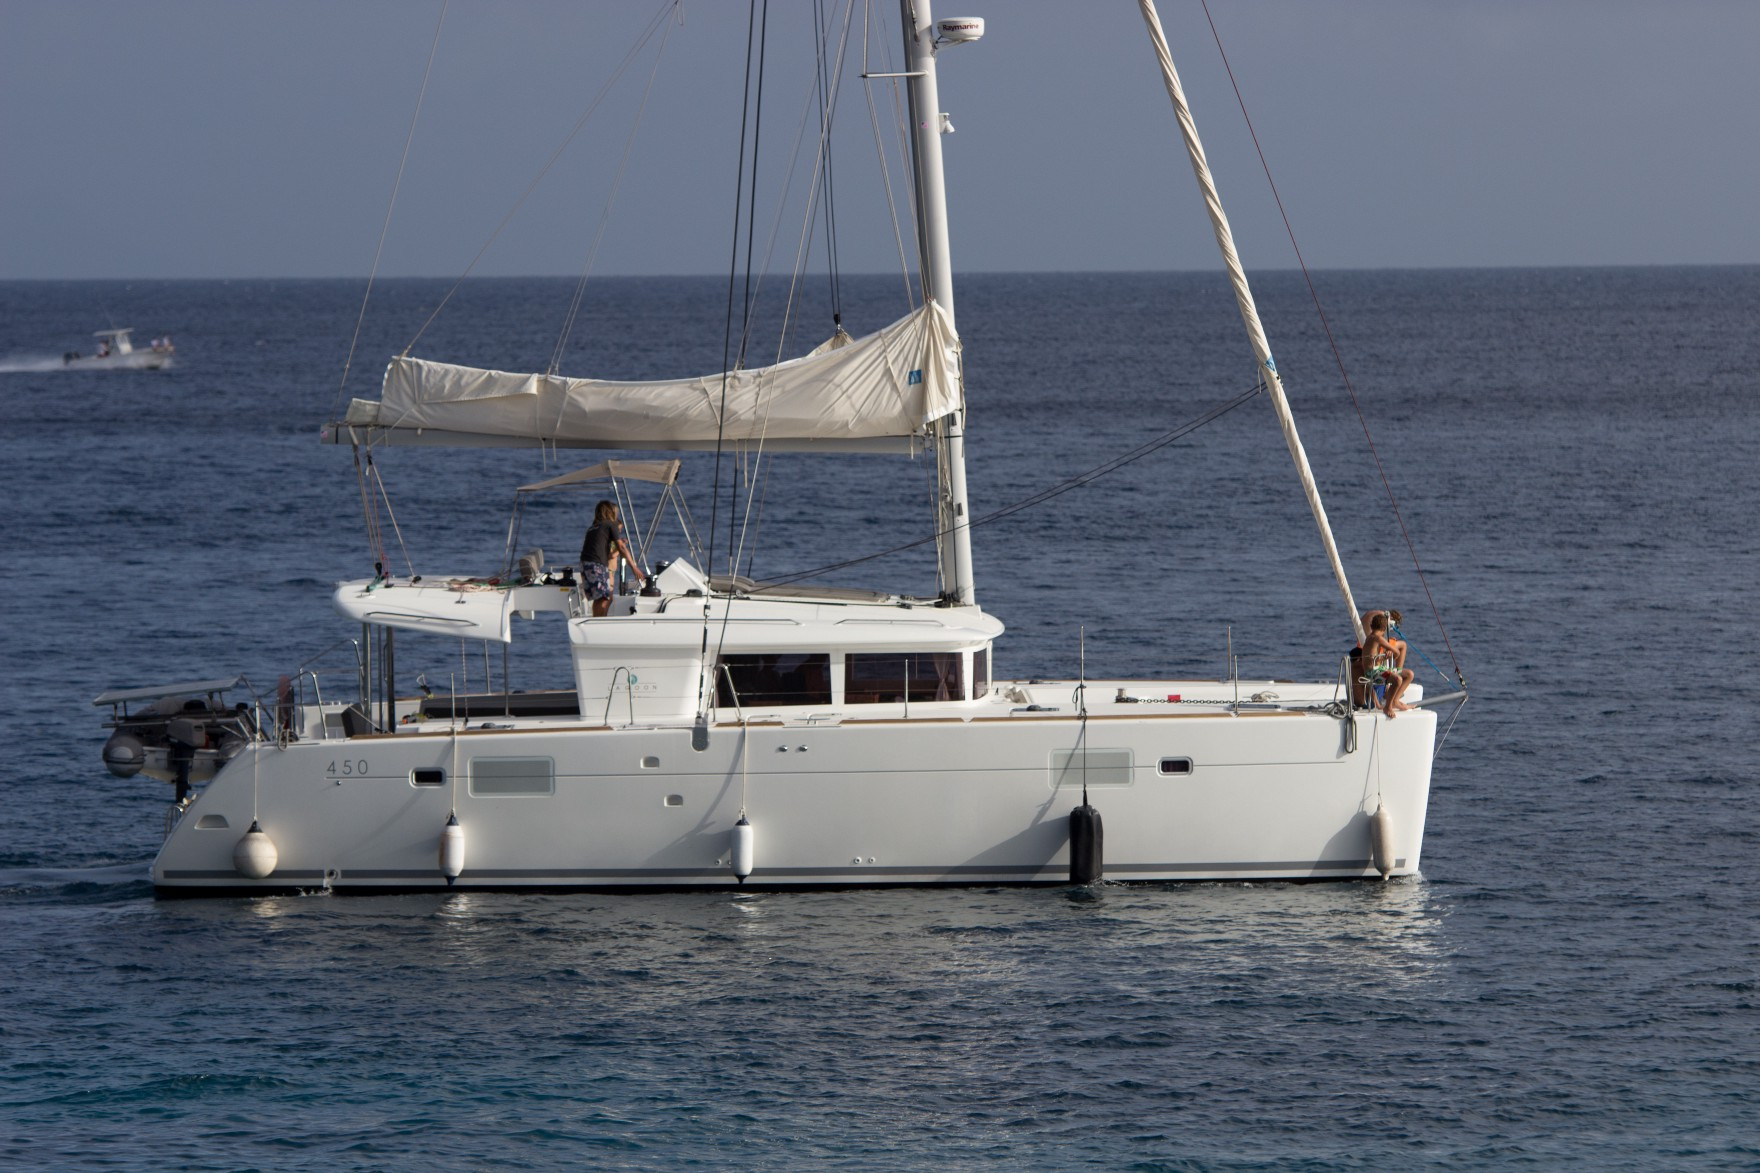 Ad Astra, a Lagoon 450